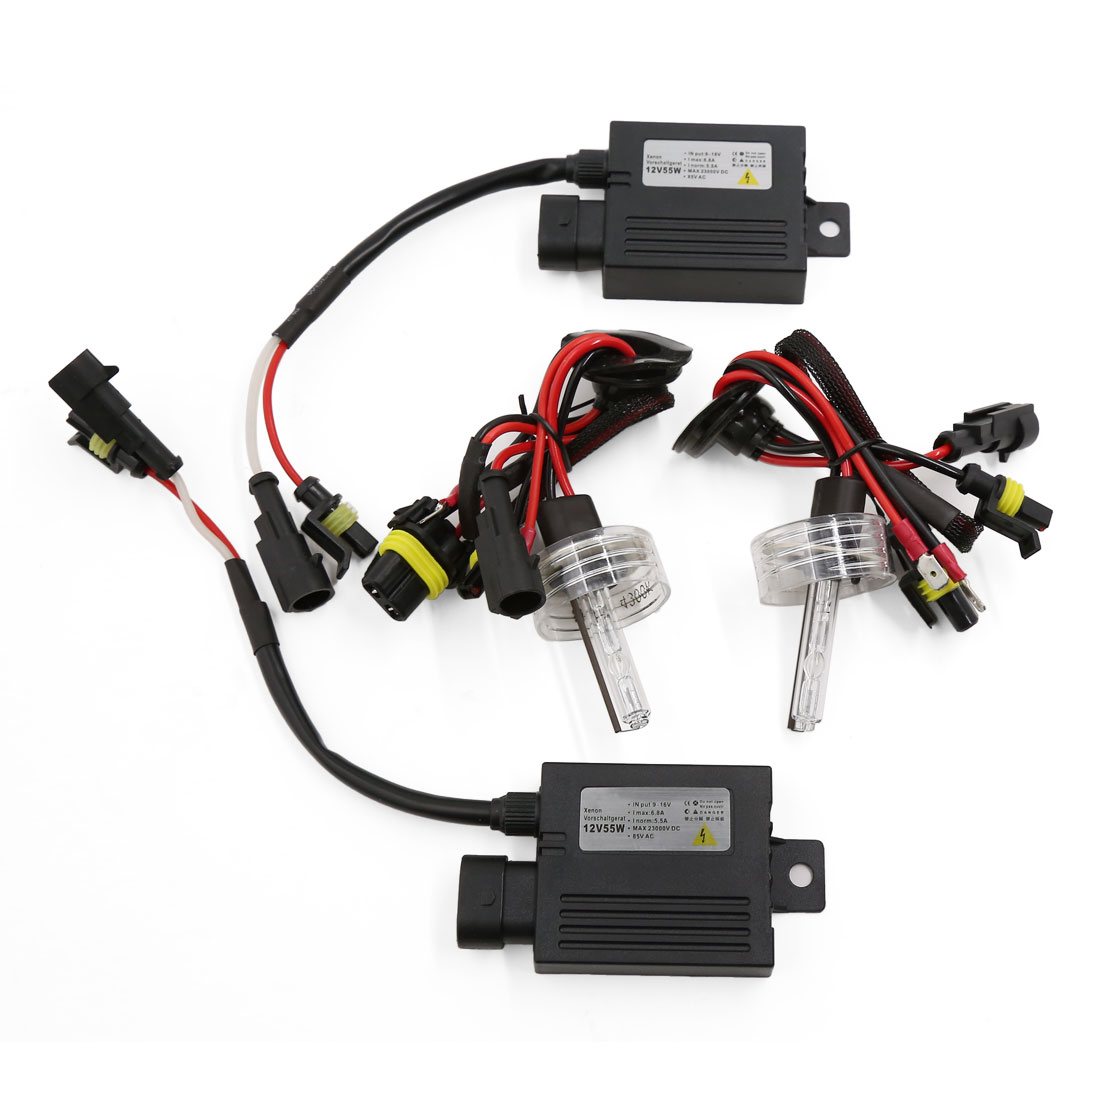 Car 4300K H3 HID Light Bulb Single Beam Xenon Lamp Headlight Slim Conversion Kit